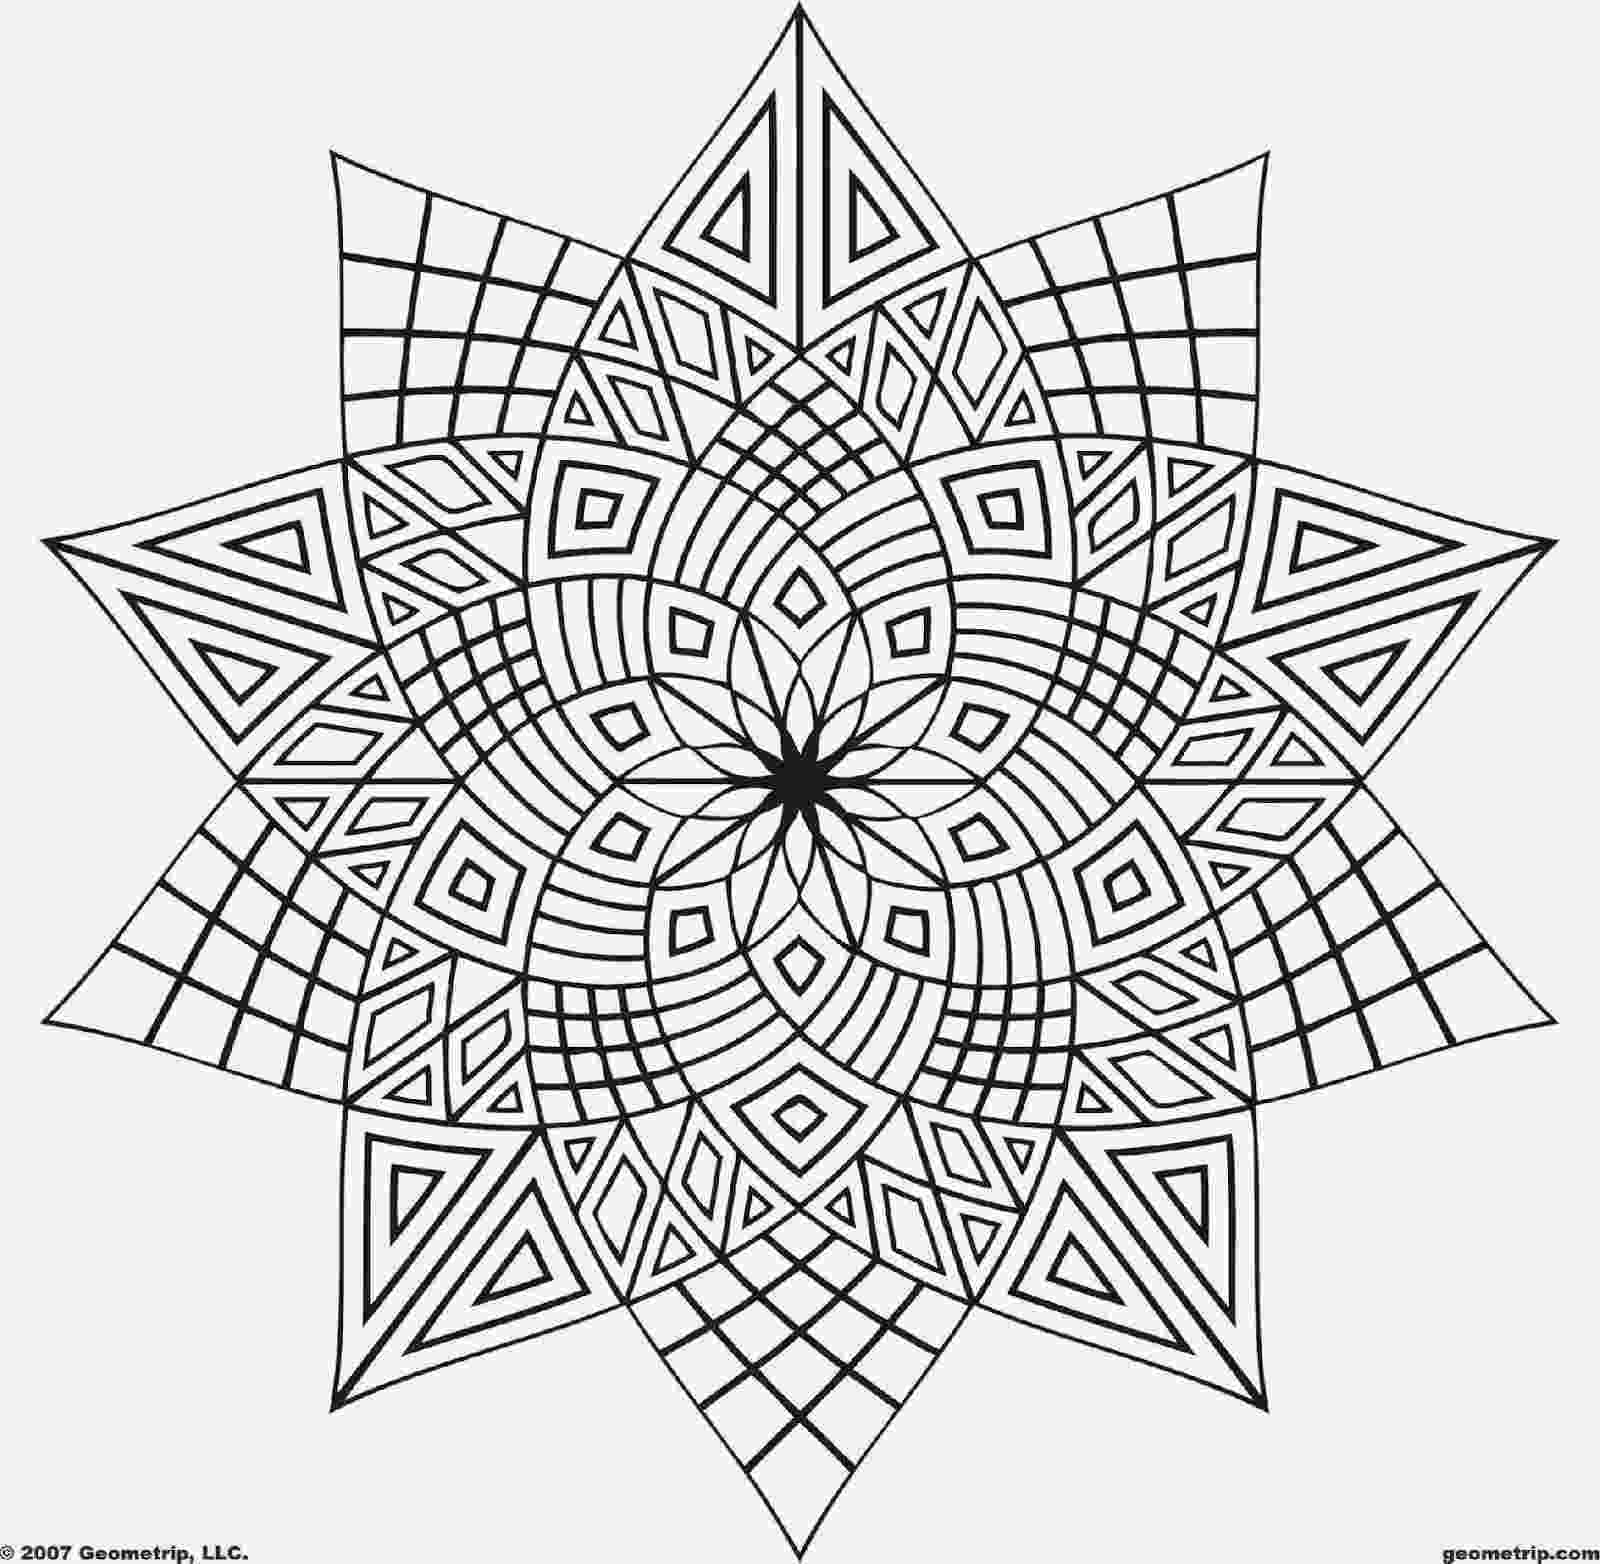 awesome coloring pages get this free awesome coloring pages for toddlers 4jgo1 awesome pages coloring